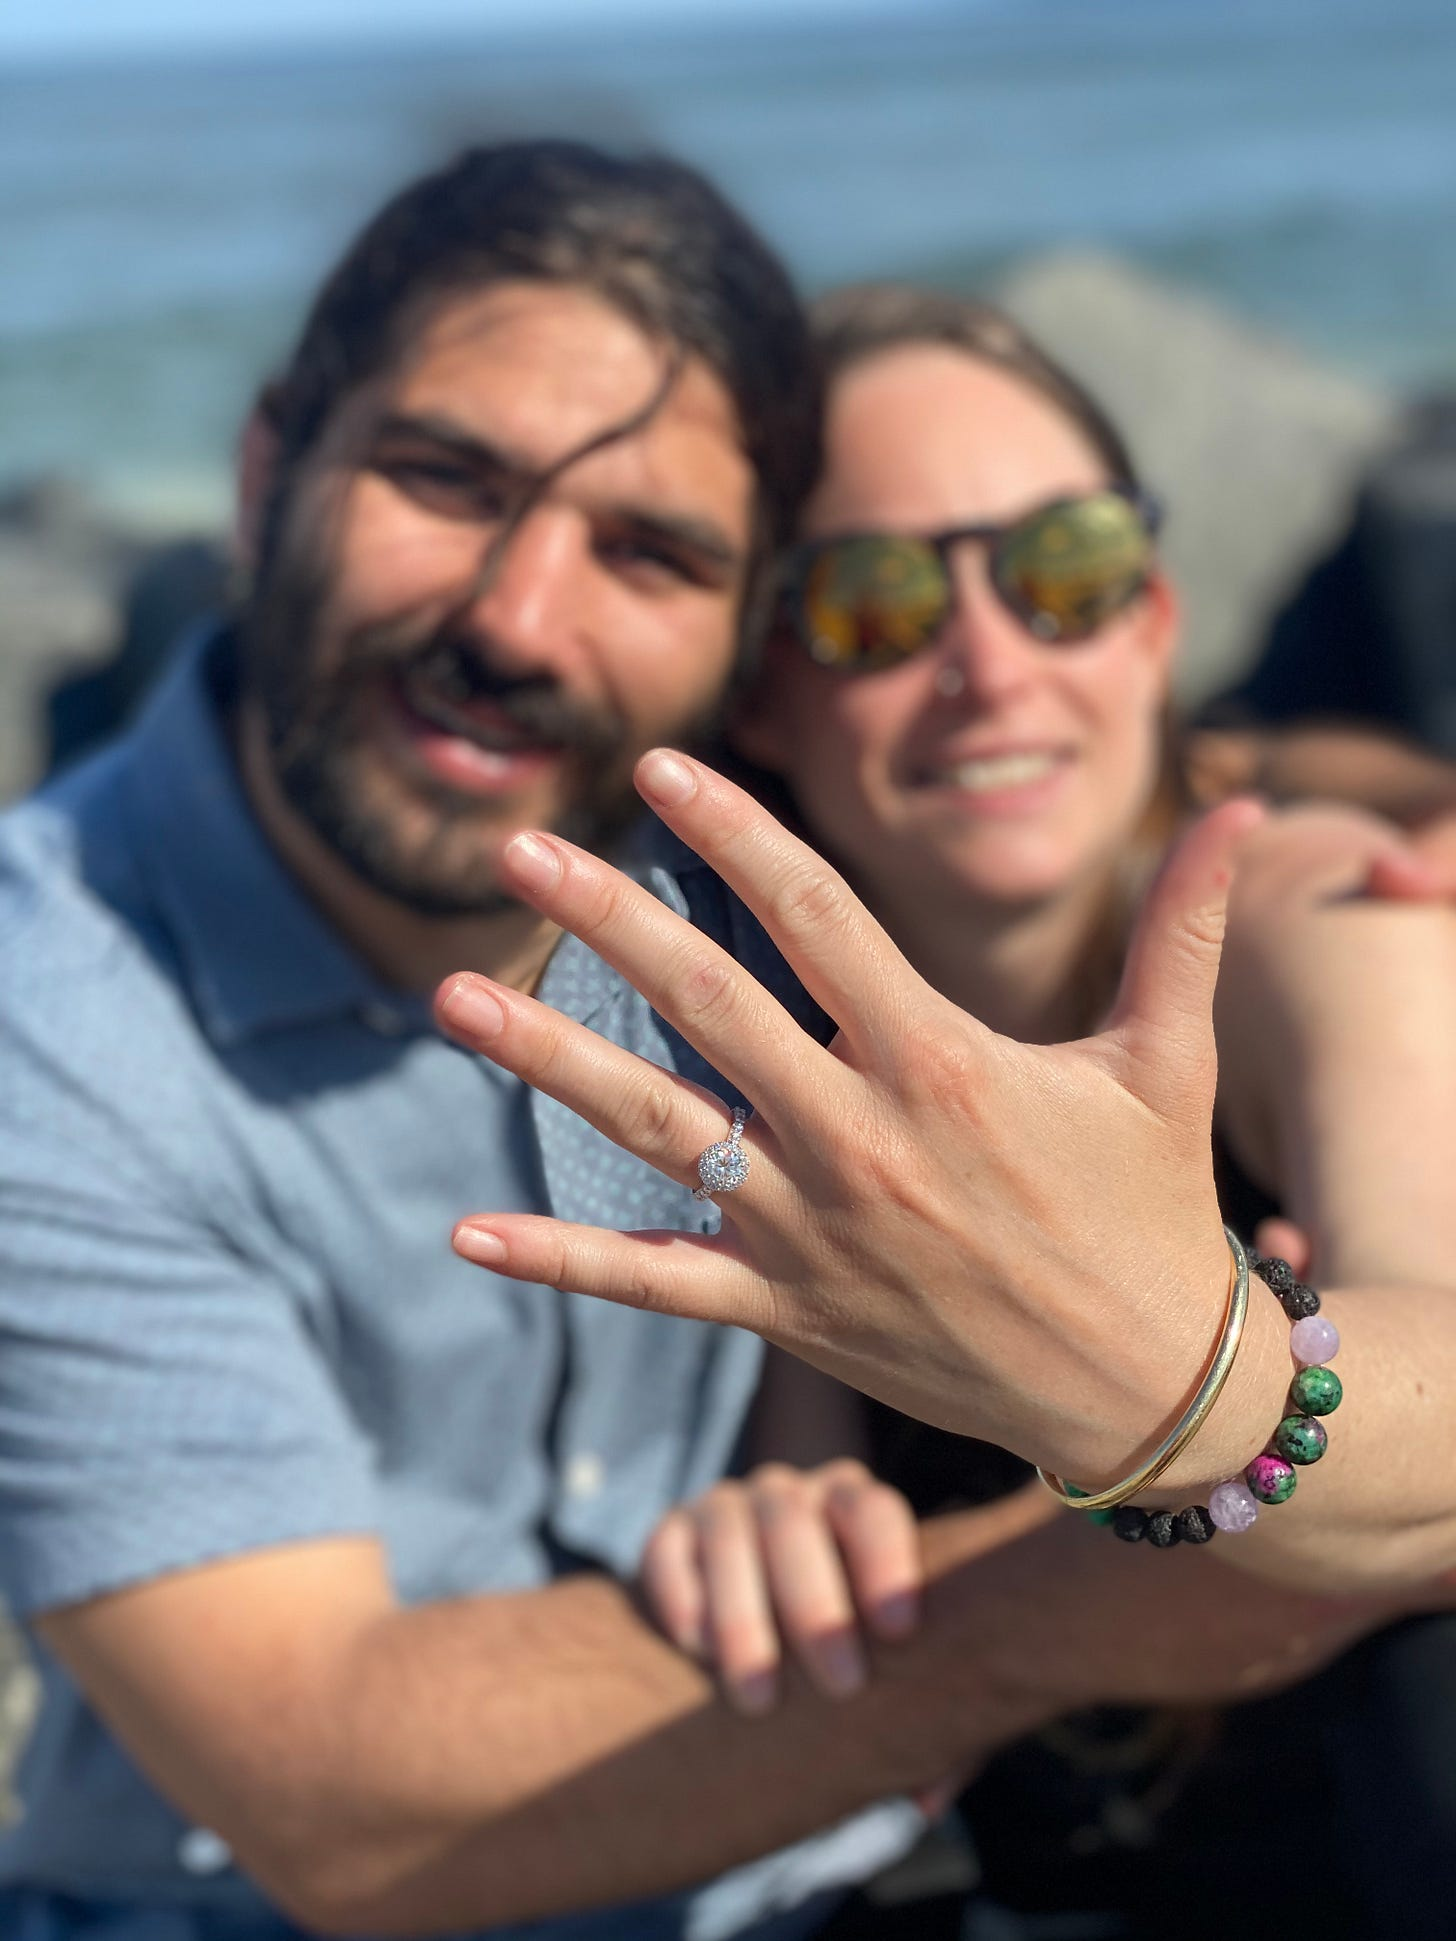 anthony and kelly pose engagement ring up